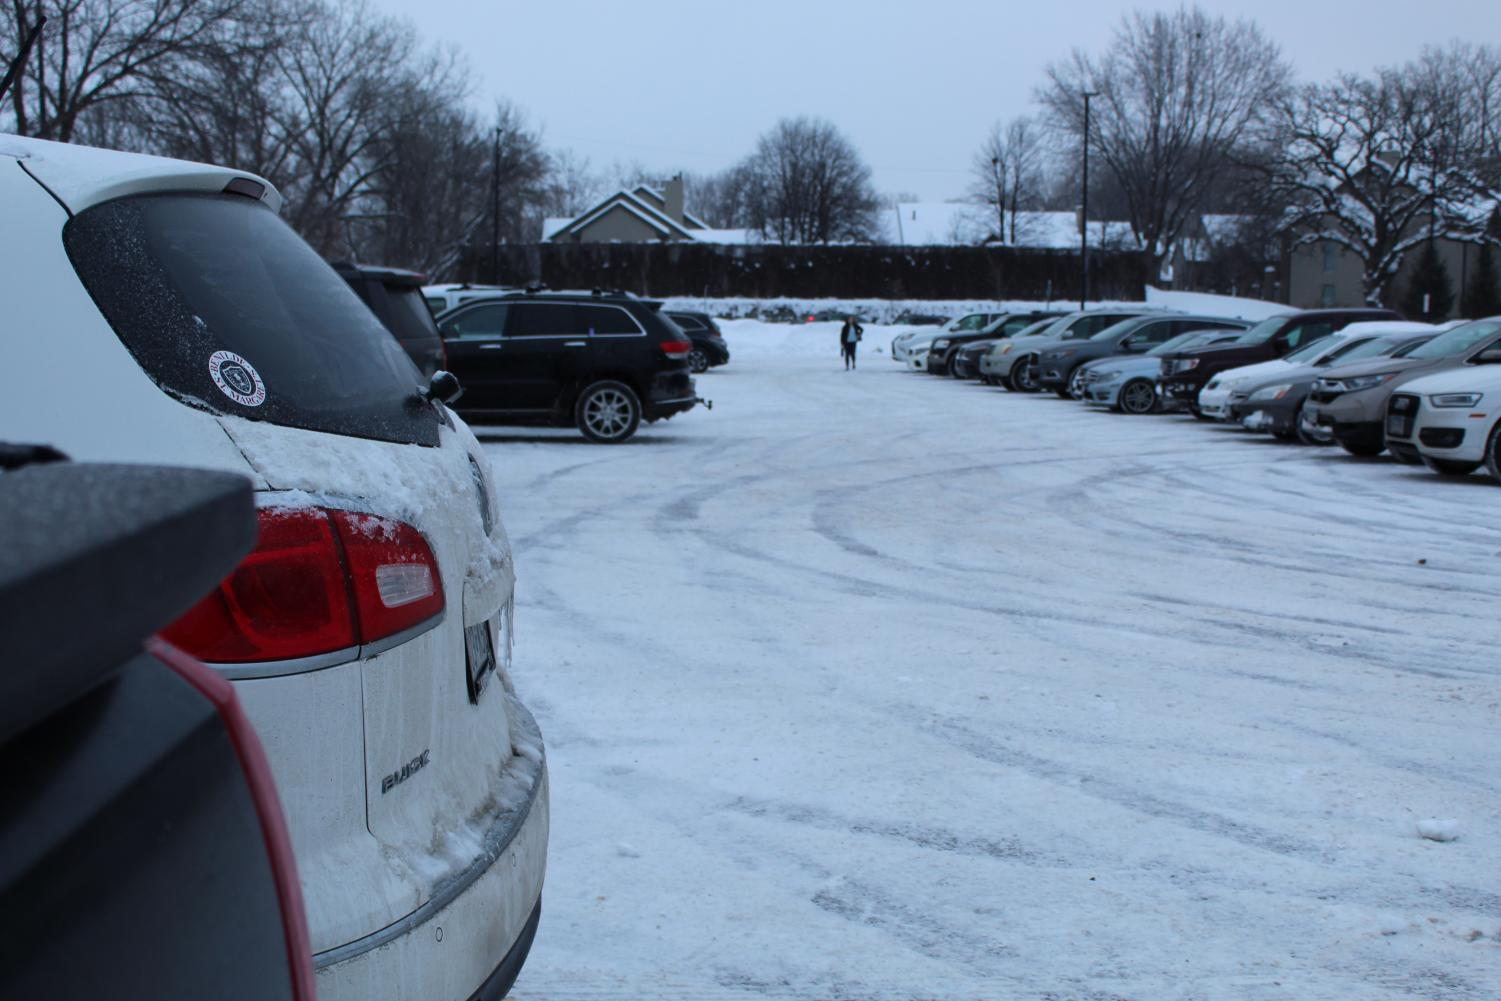 The frigid winter weather left the school parking lot icy and dangerous.